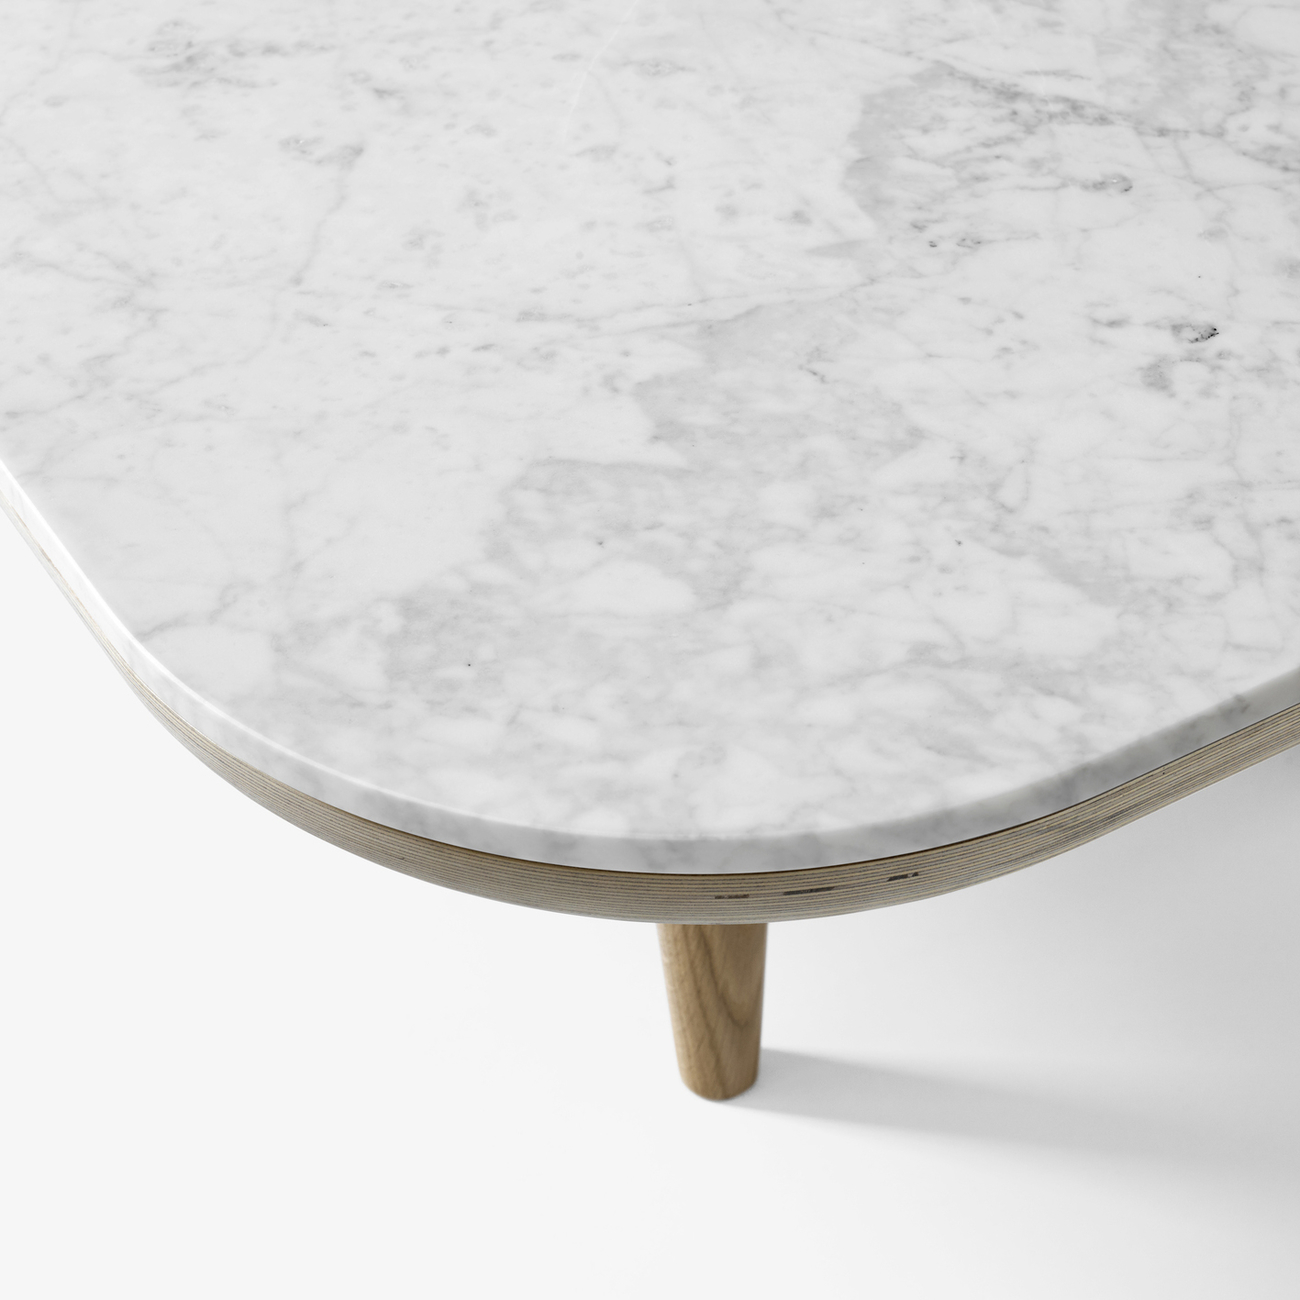 https://www.fundesign.nl/media/catalog/product/f/l/fly_honed-bianco-carrara-marble_sc4_cropped.jpg